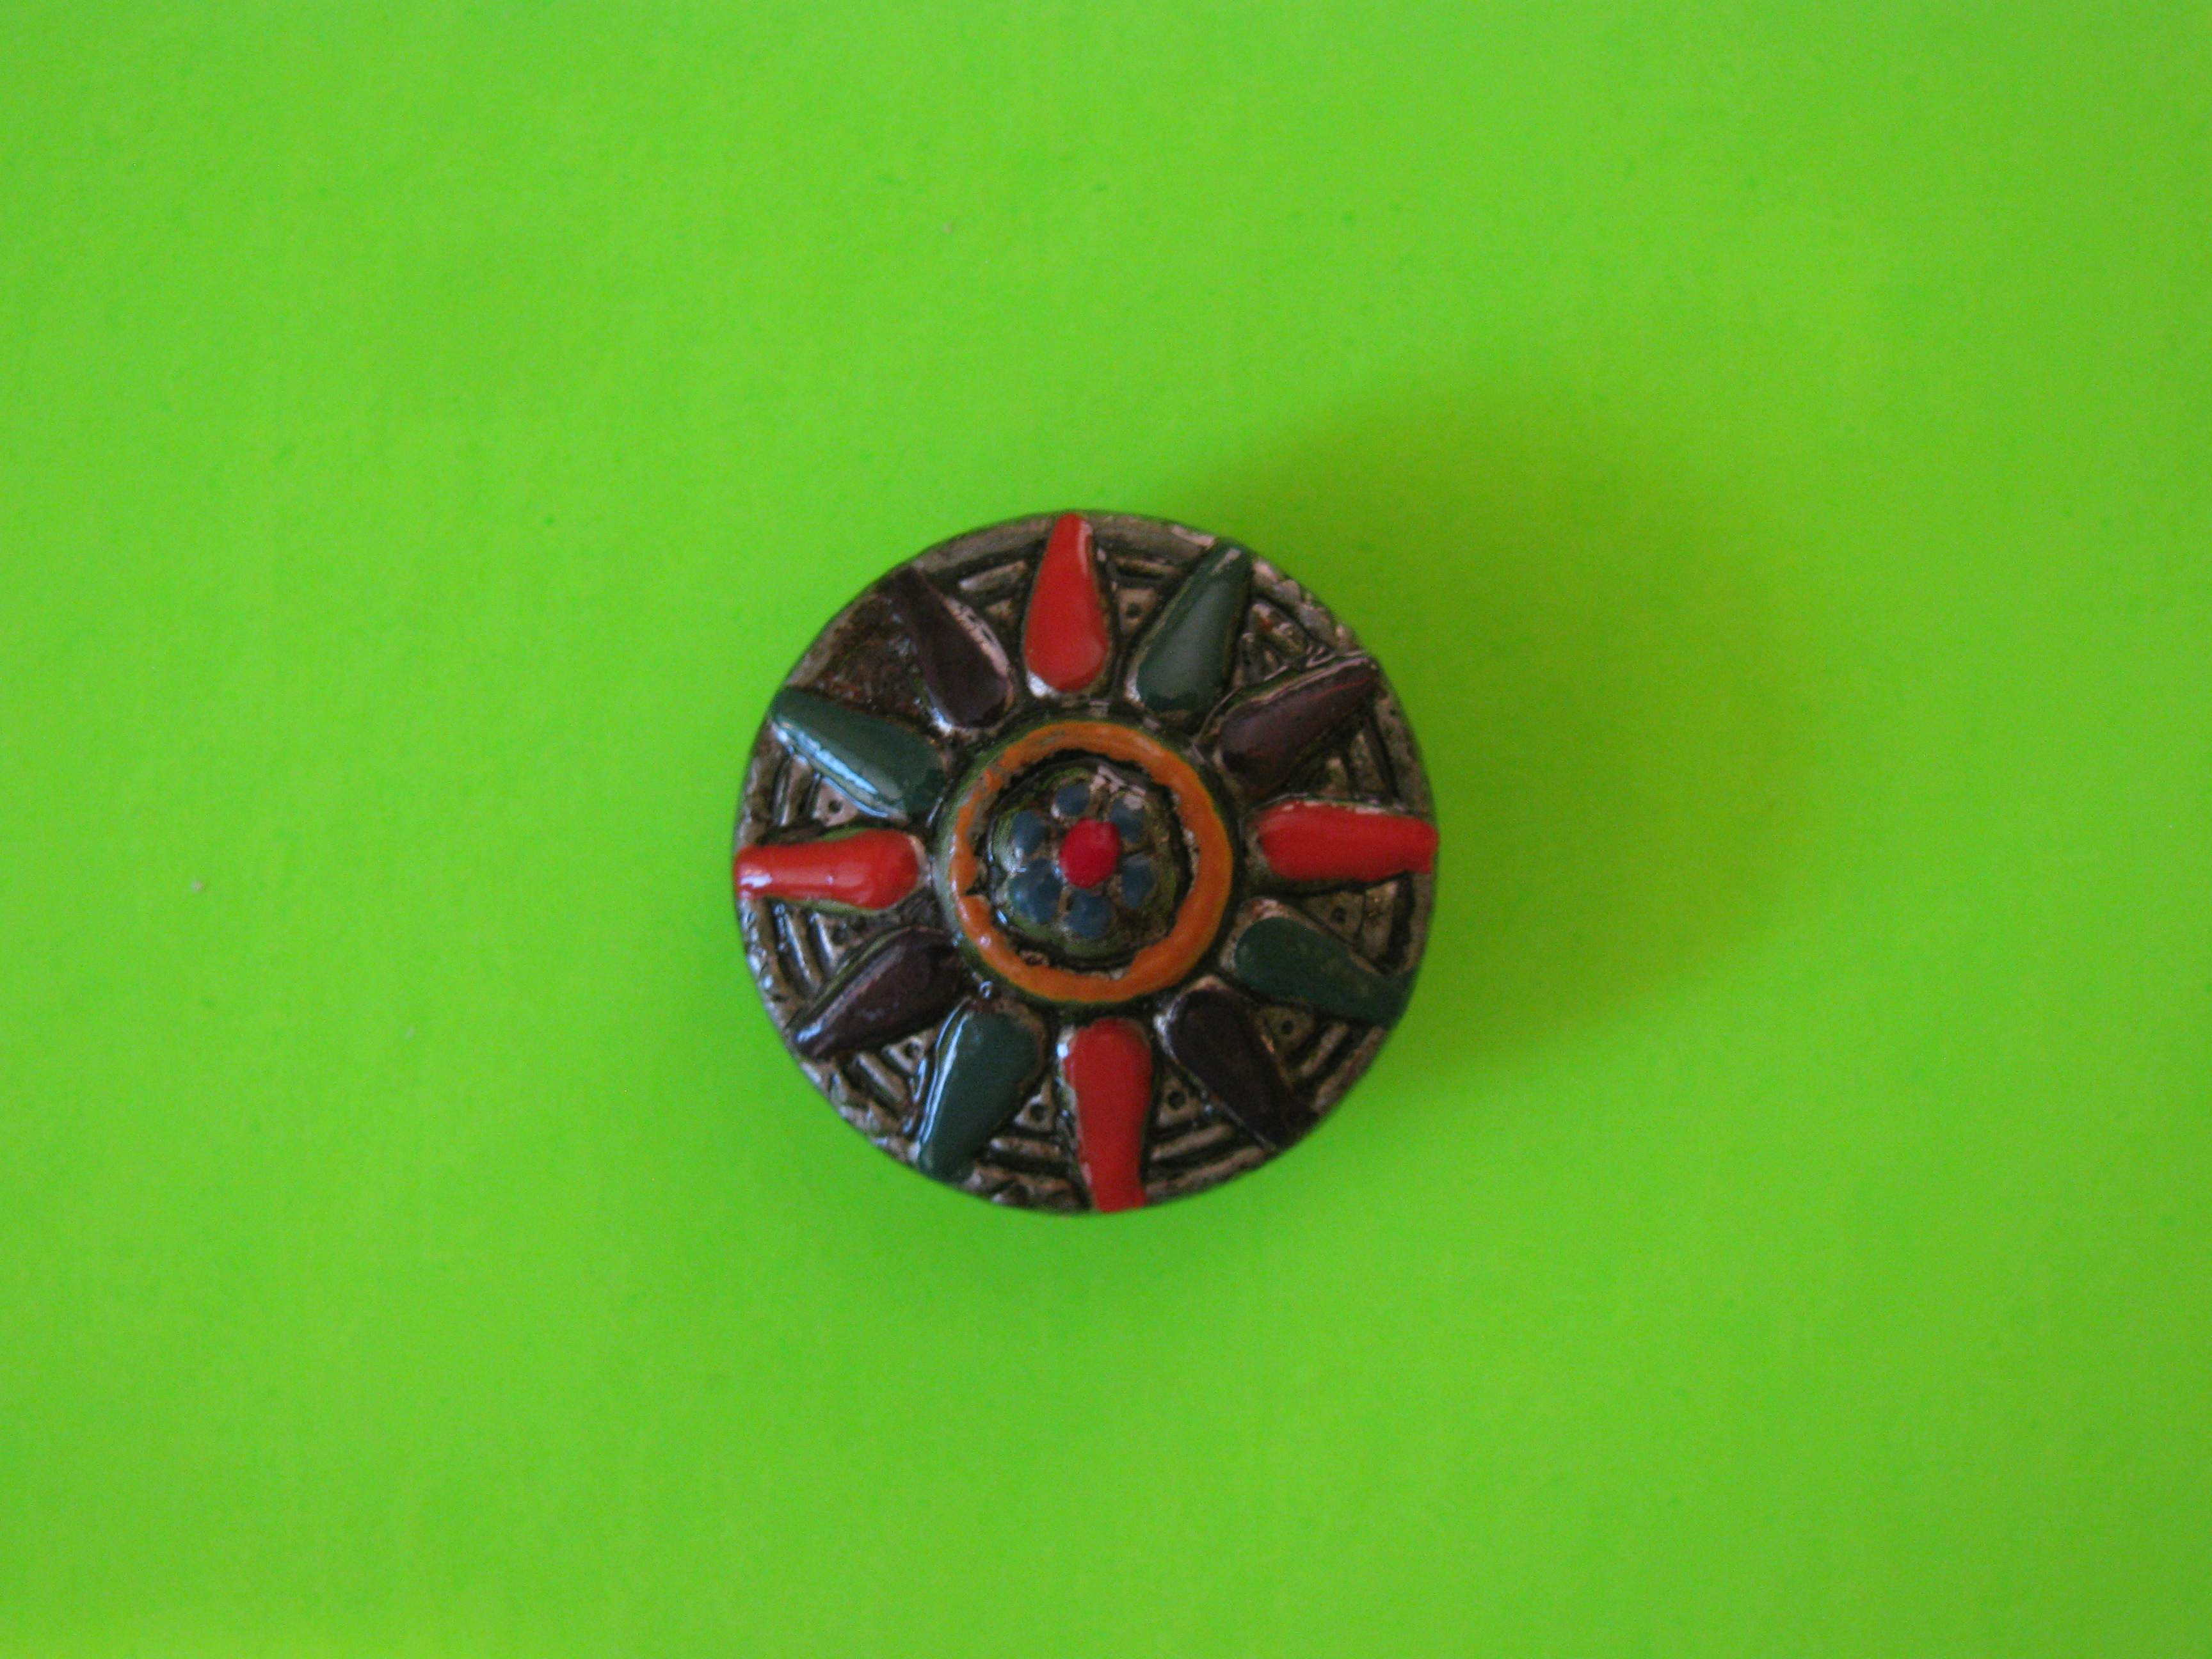 Festive Red Hot Chili Peppers on Metal Button with Metal Loop Shank